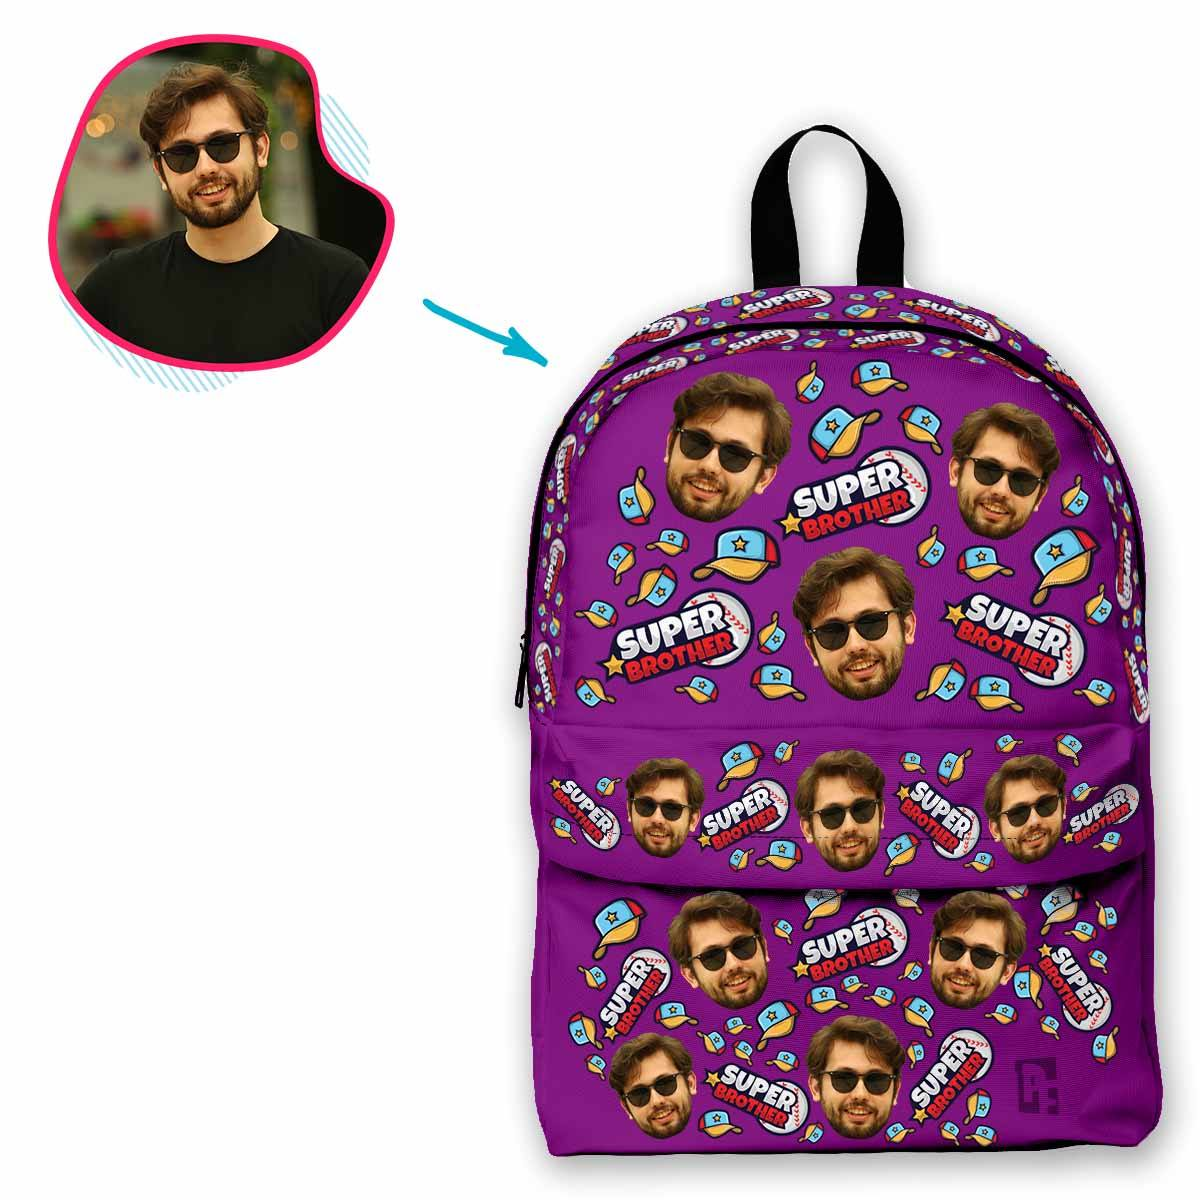 purple Super Brother classic backpack personalized with photo of face printed on it